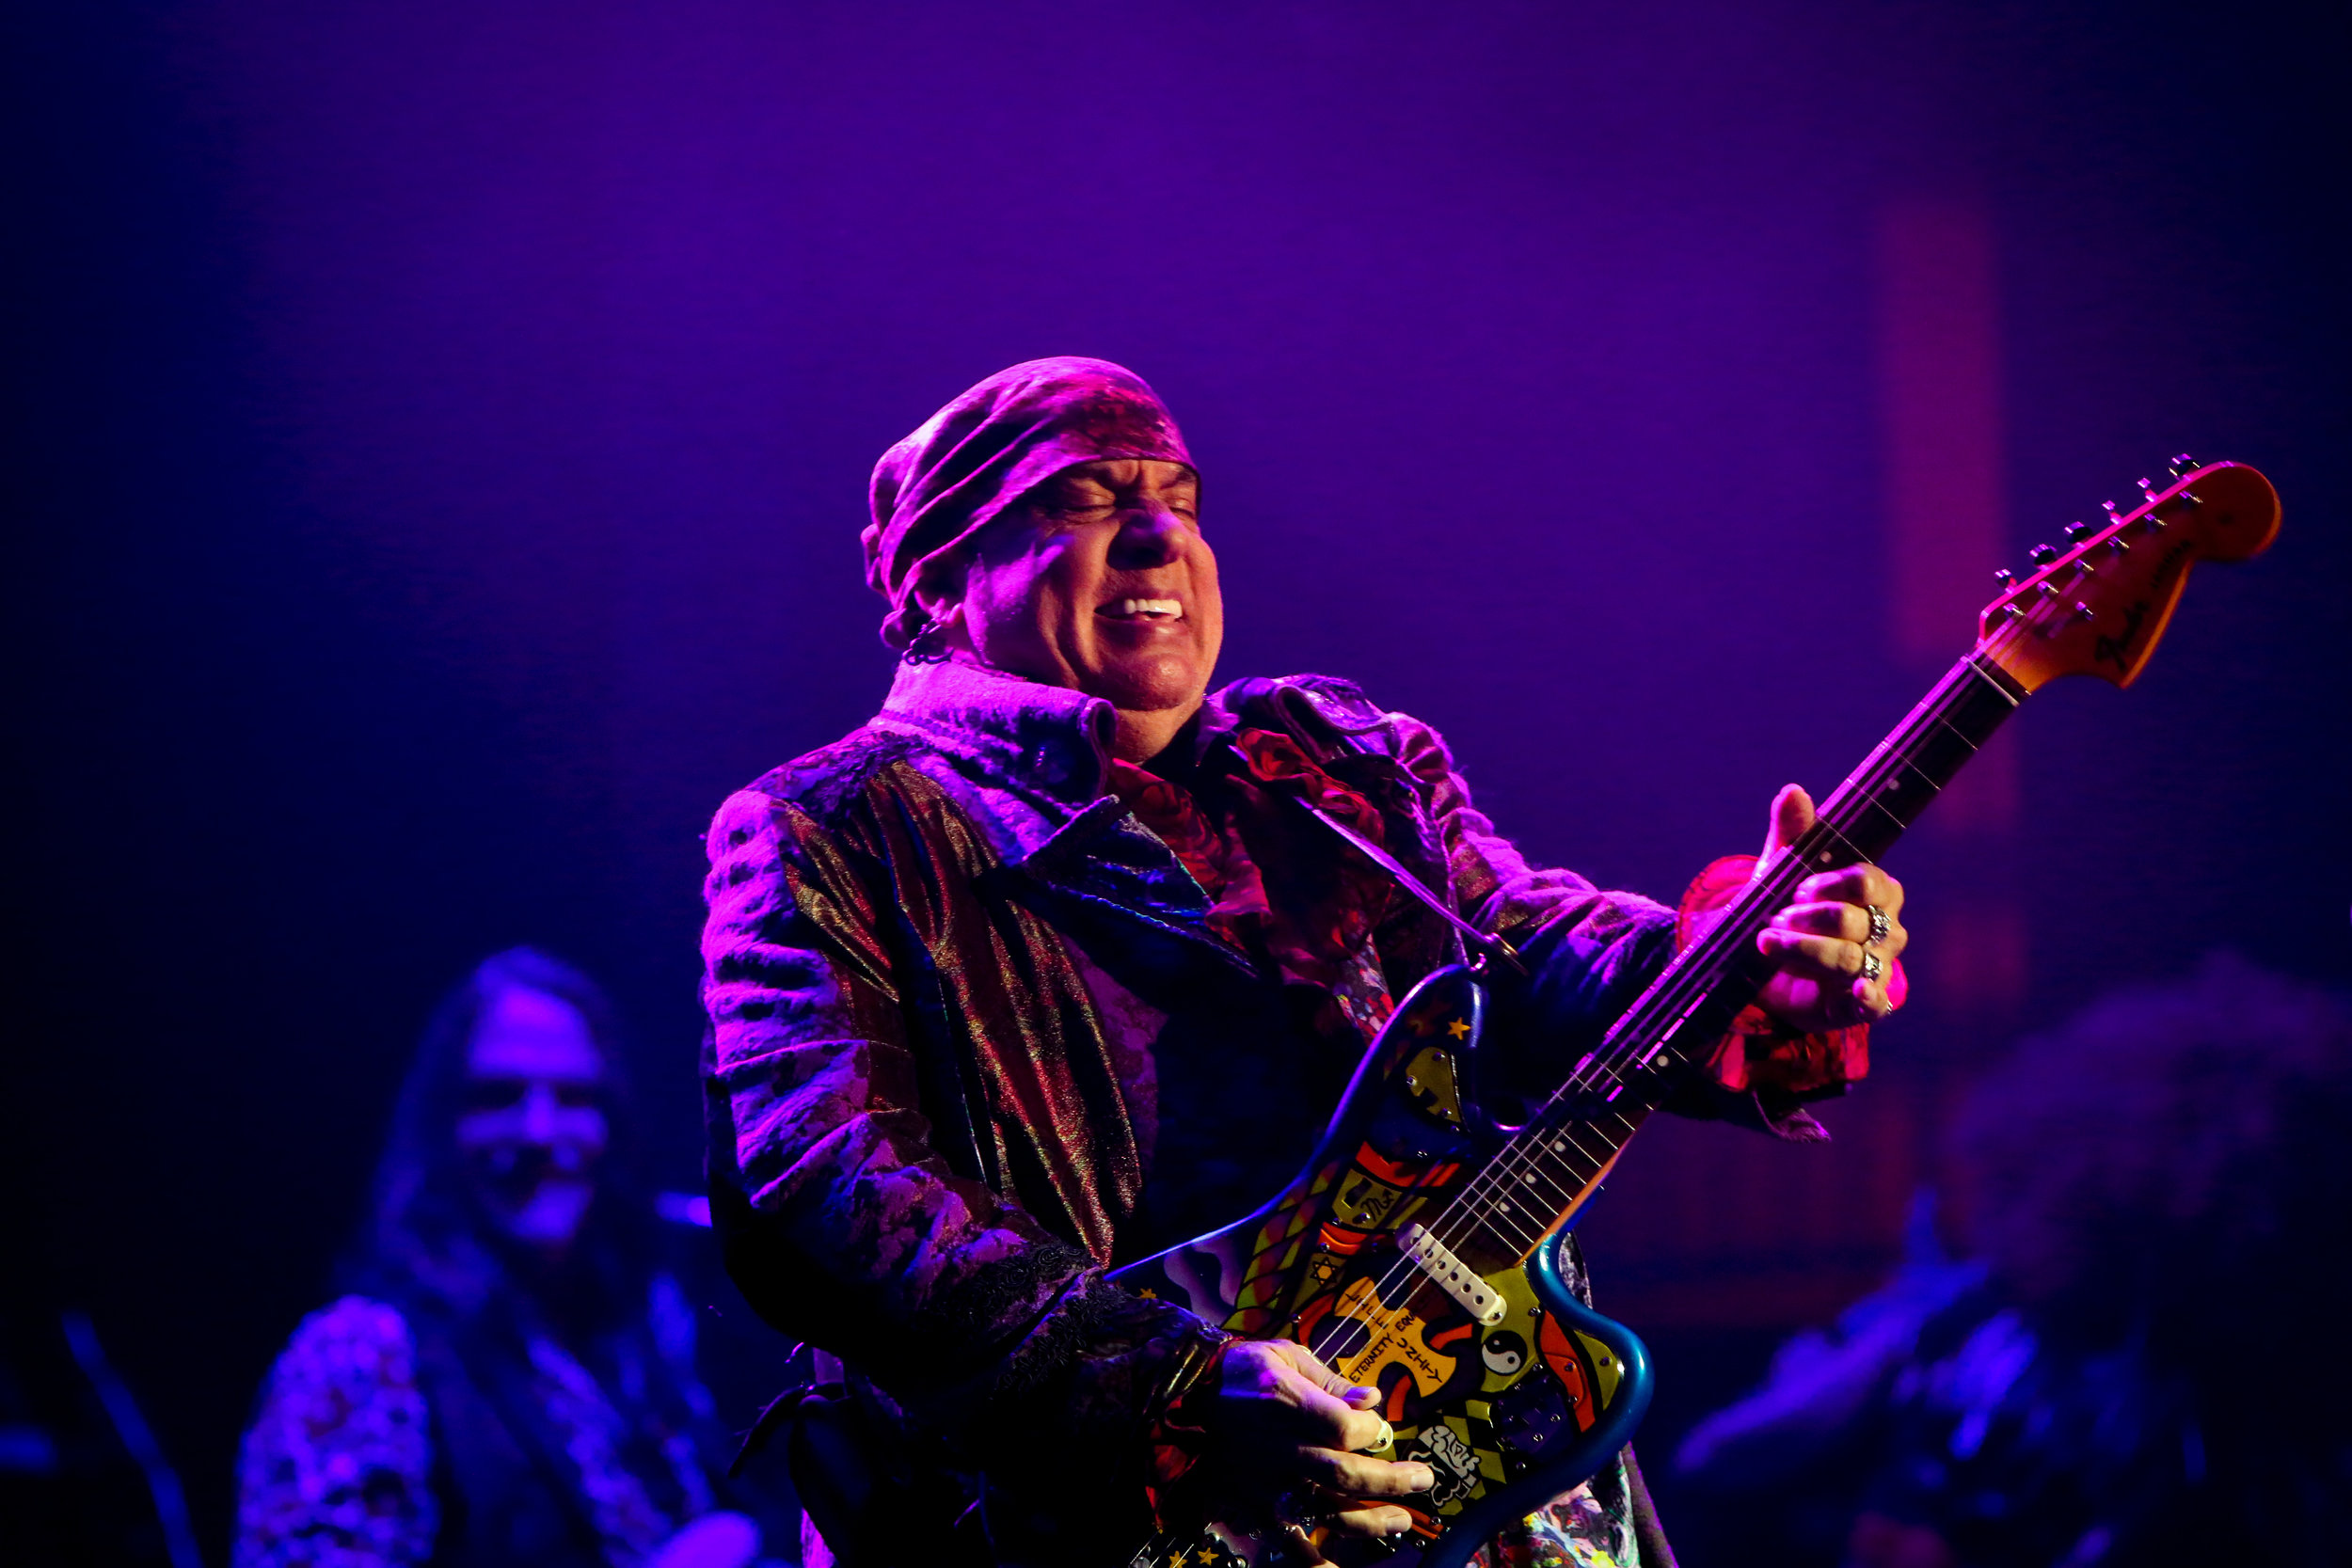 Little Steven Van Zandt and the Disciples of Soul Perform Friday at the State Theatre in Easton